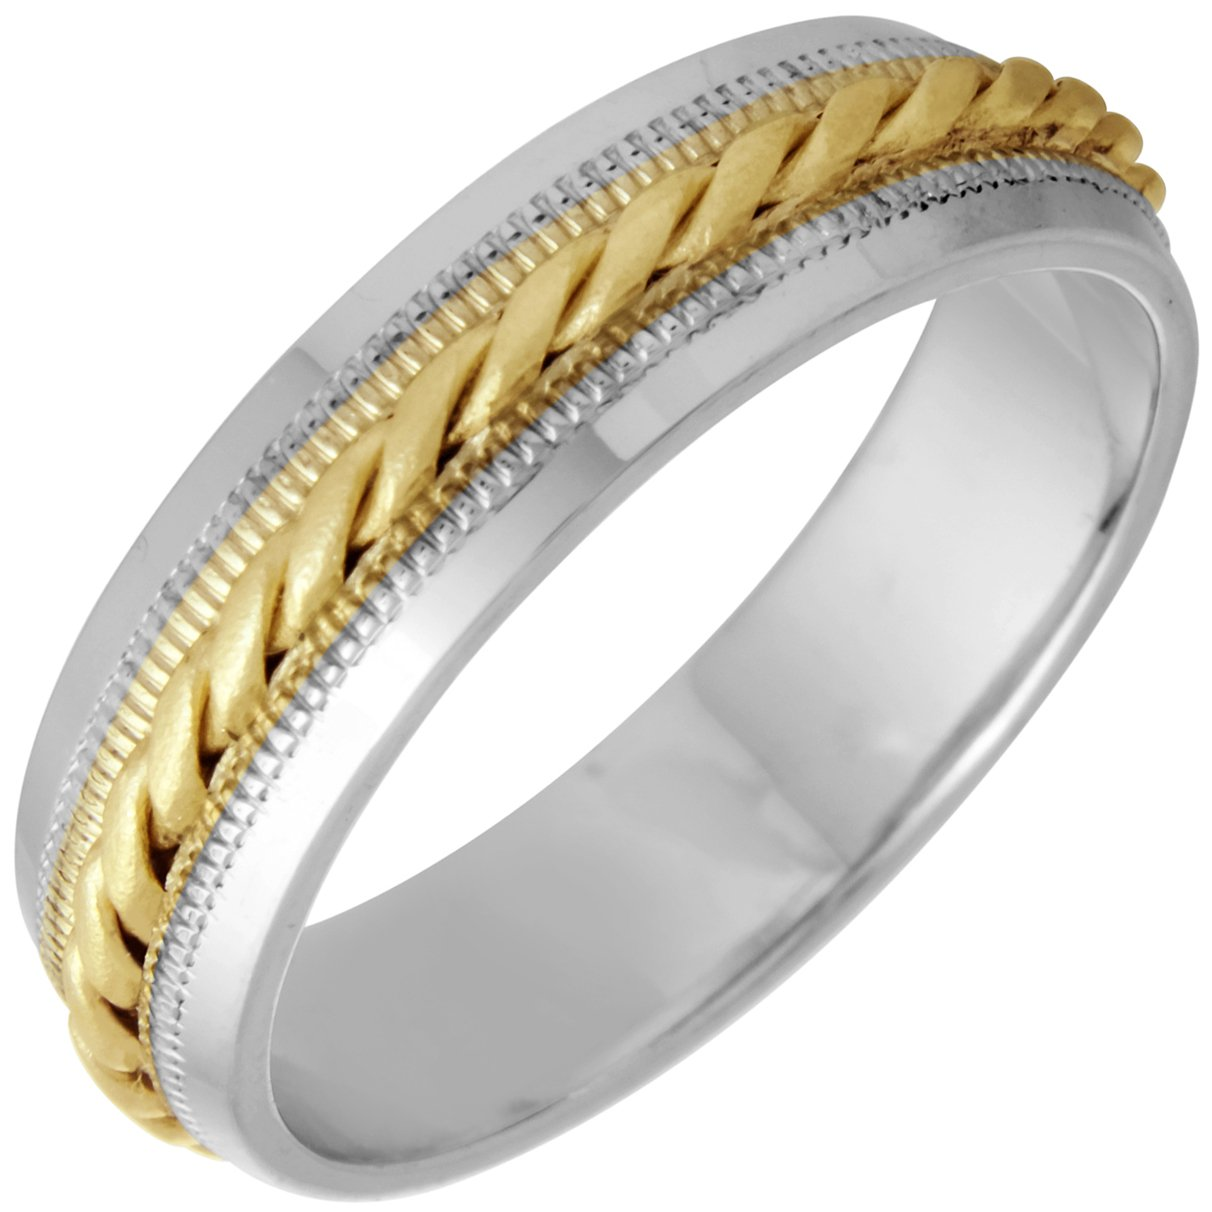 Amazon 14k Twotone Yellow And White Gold Braided Coil Twist Women's Fortfit Wedding Bands 6mm Jewelry: Twisted Two Tone Wedding Bands At Websimilar.org